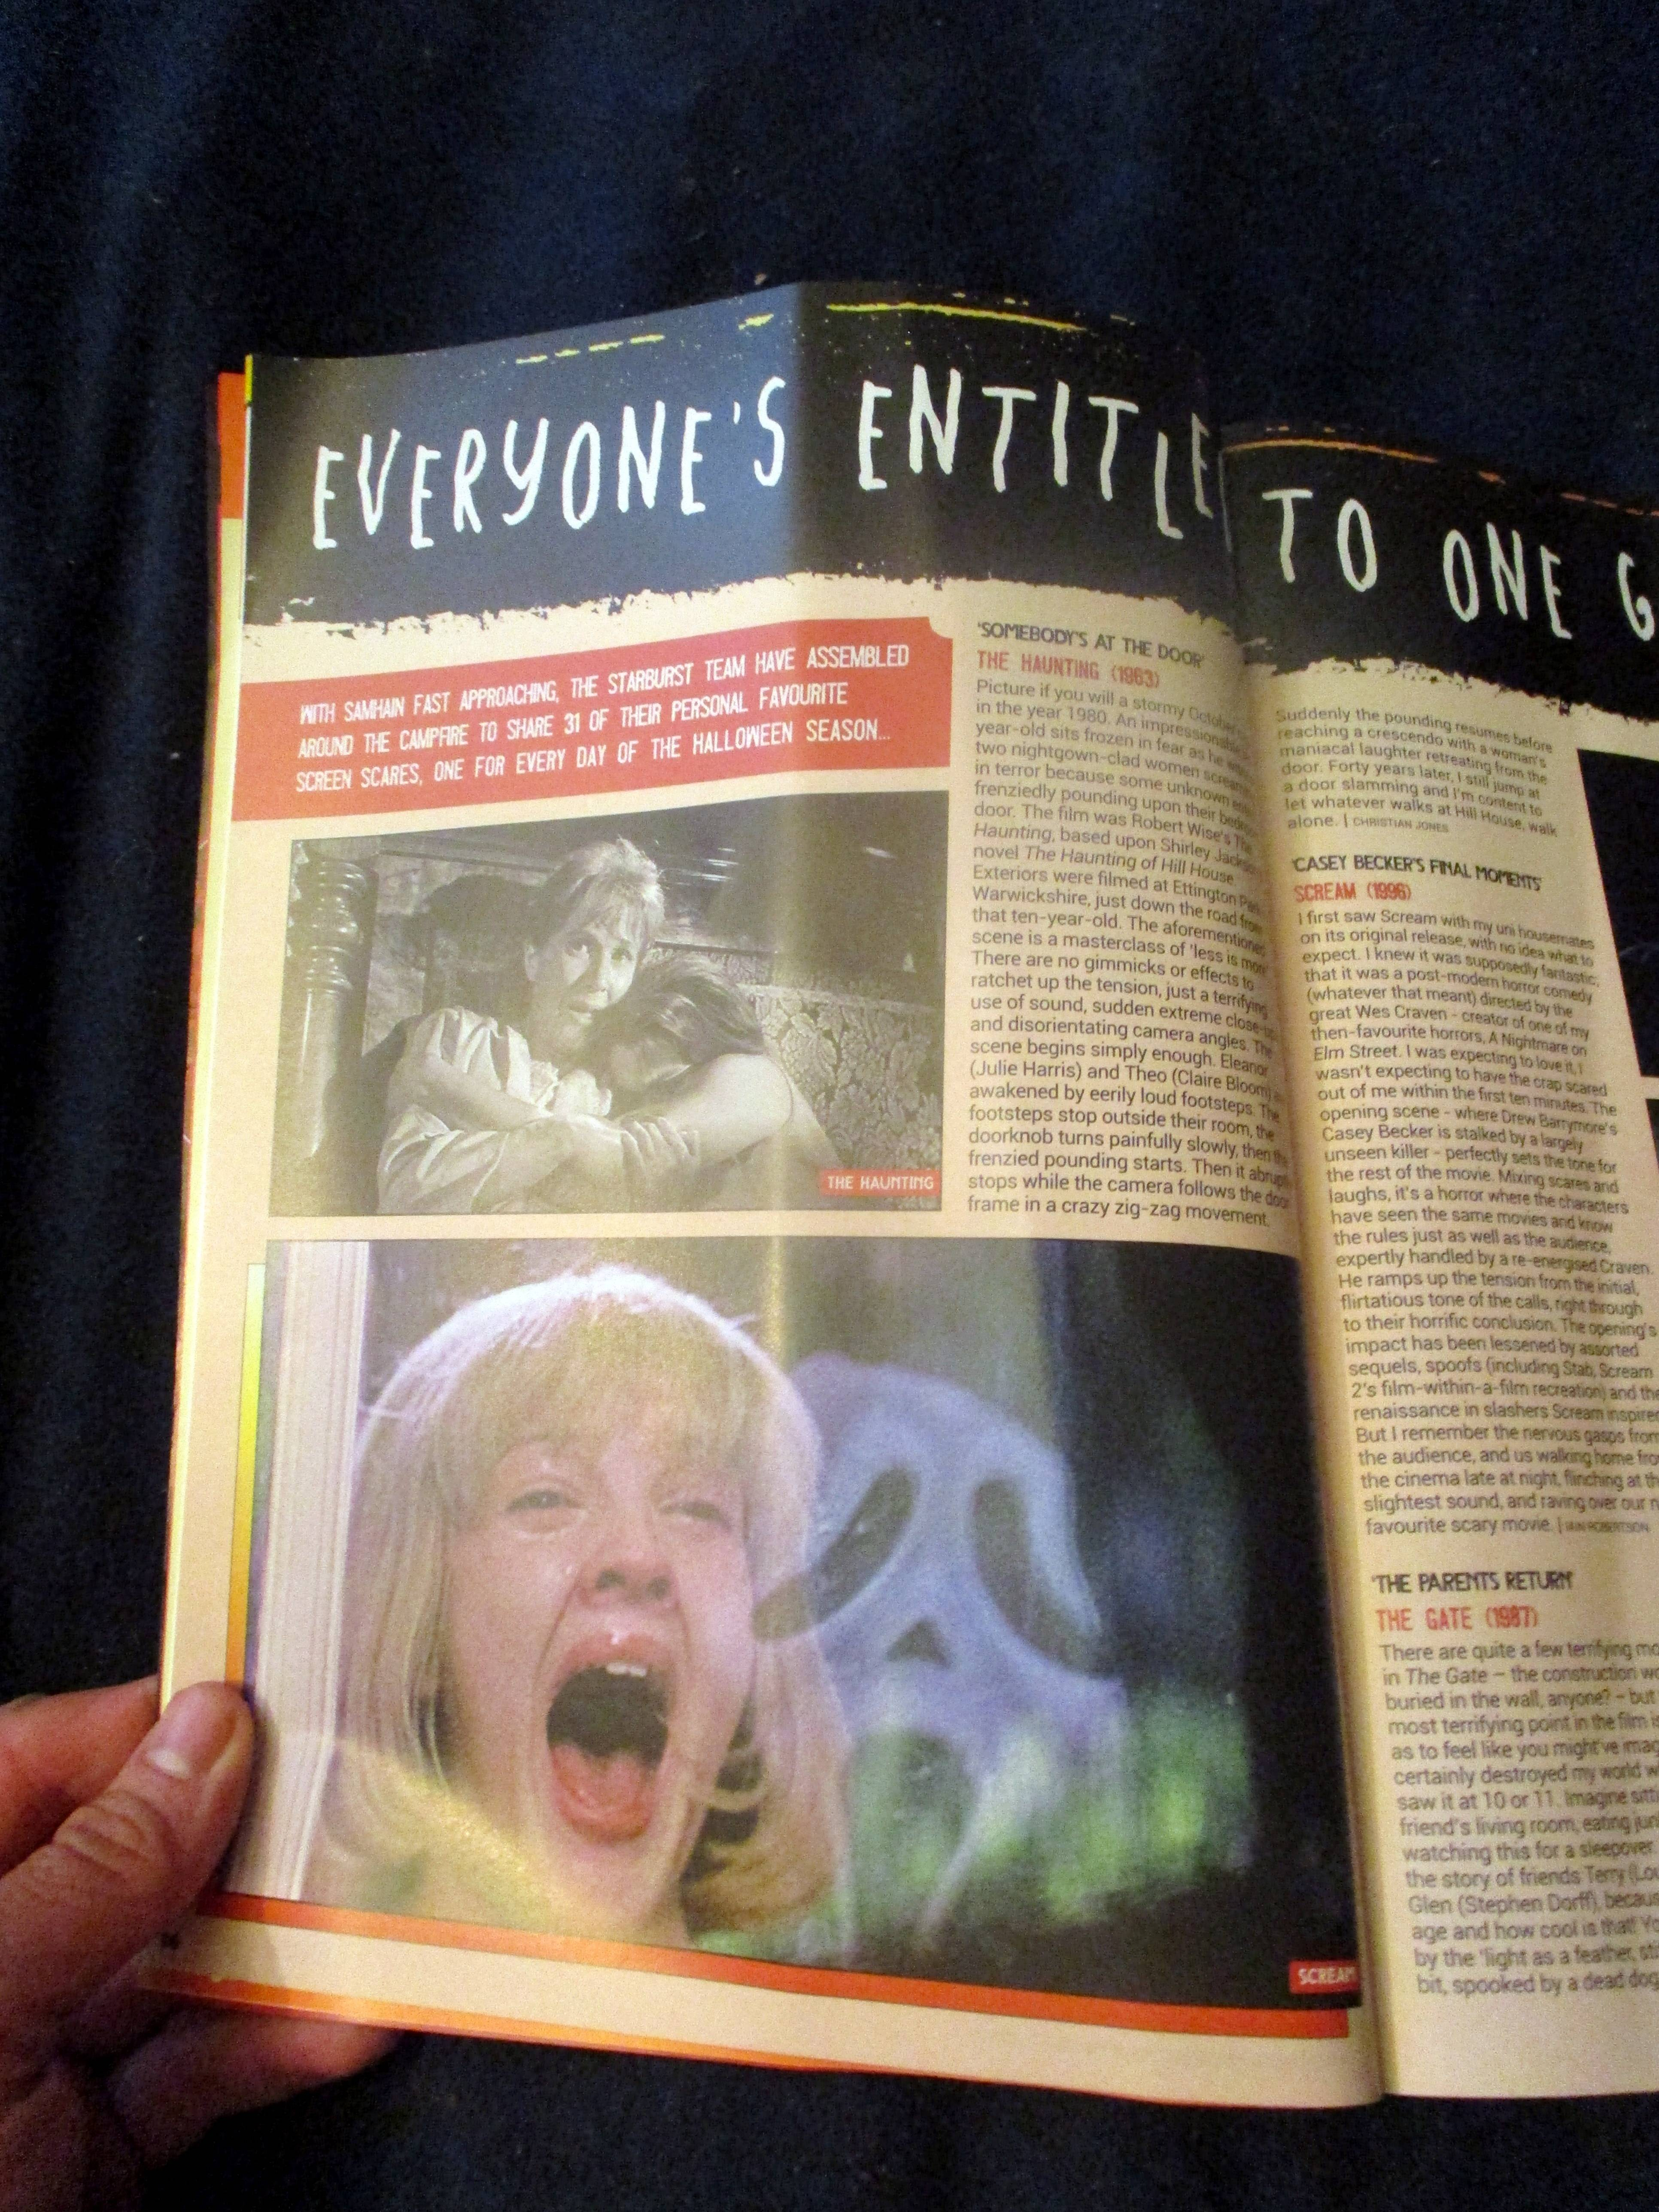 First Page of Opening Page Spread of Everyone's Entitled to One Good Scare in Starburst Magazine #474: Everyone's Entitled to One Good Scare Collectors' Edition at The Wombatorium 2.0: A Capital Idea